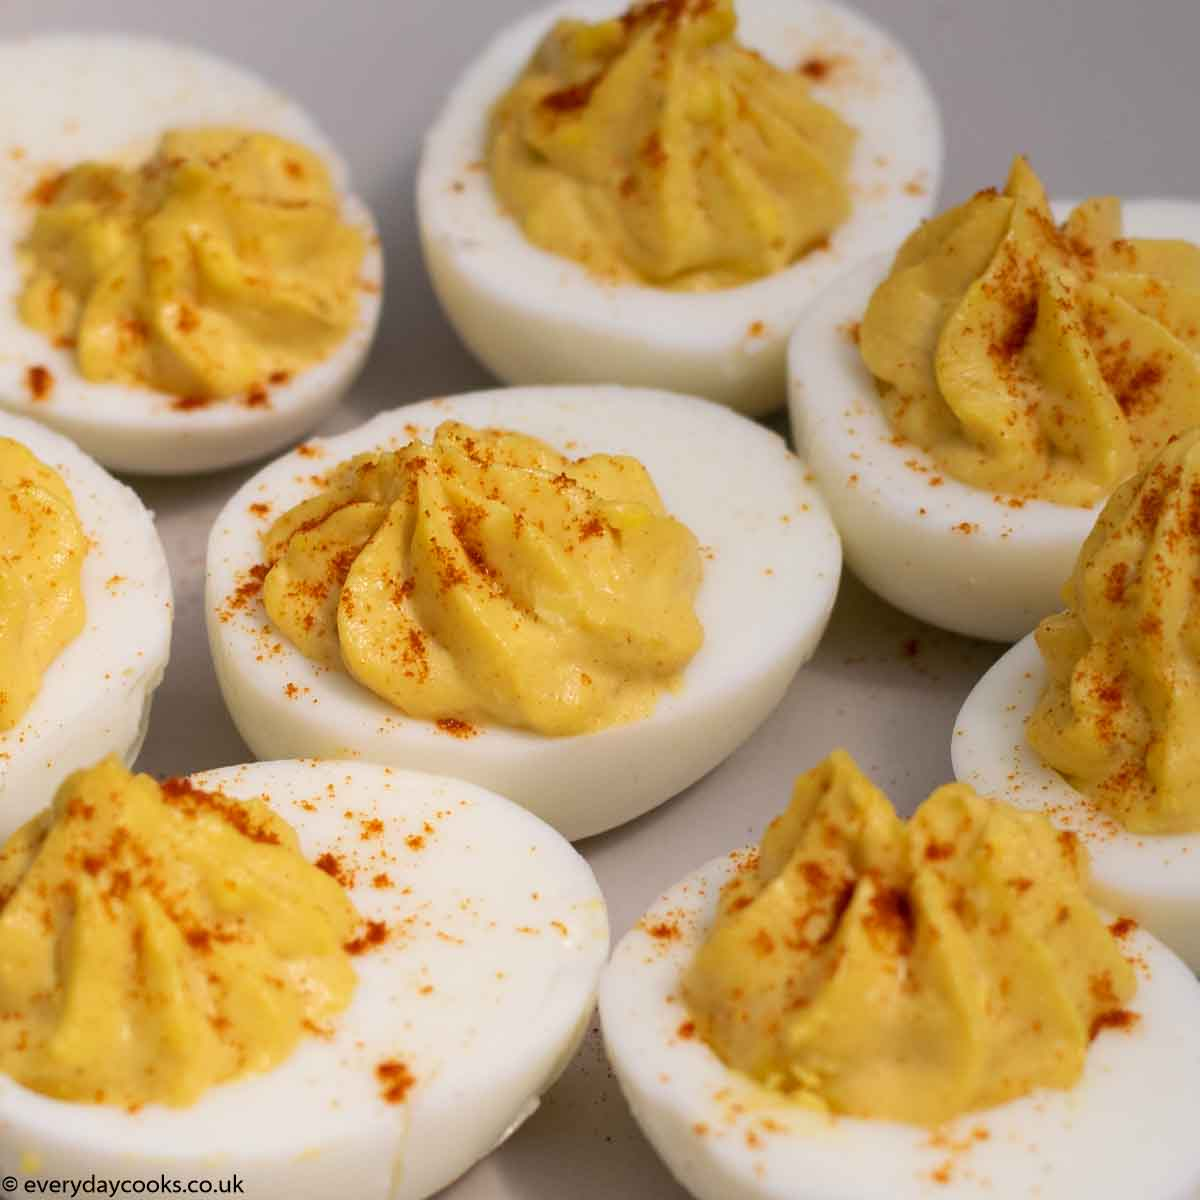 Plate of devilled egg halves